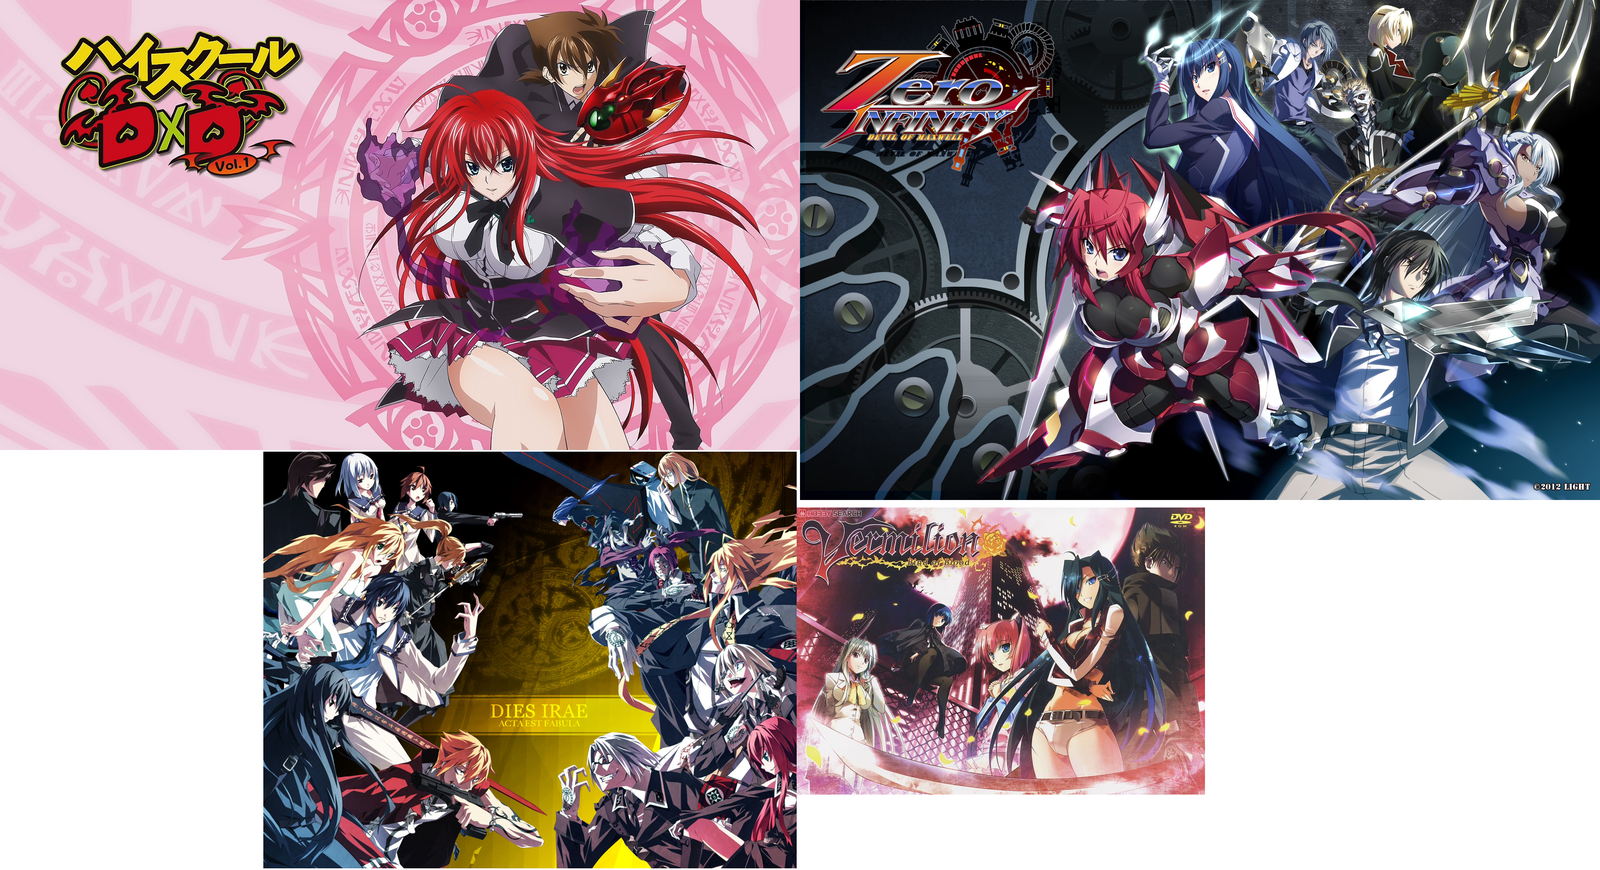 Zero Infinity -devil Of Maxwell Backgrounds, Compatible - PC, Mobile, Gadgets  1600x870 px